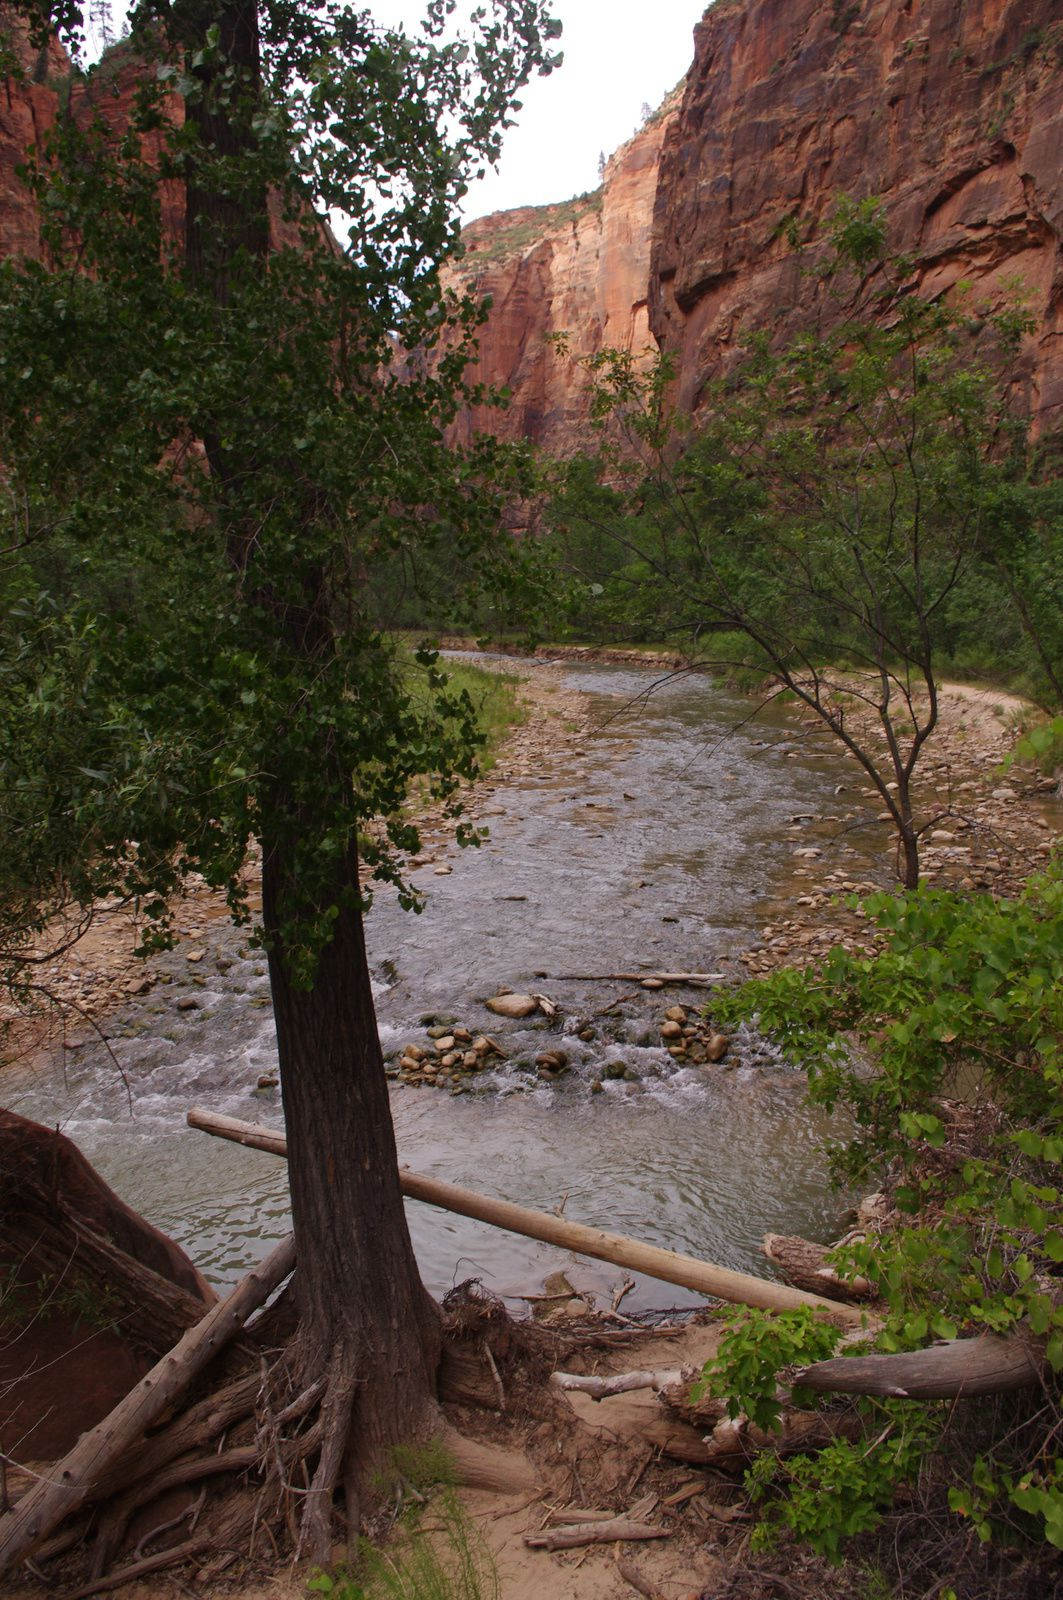 USA Road Trip - Jour 18/25 - Bryce Canyon National Park - Zion National Park